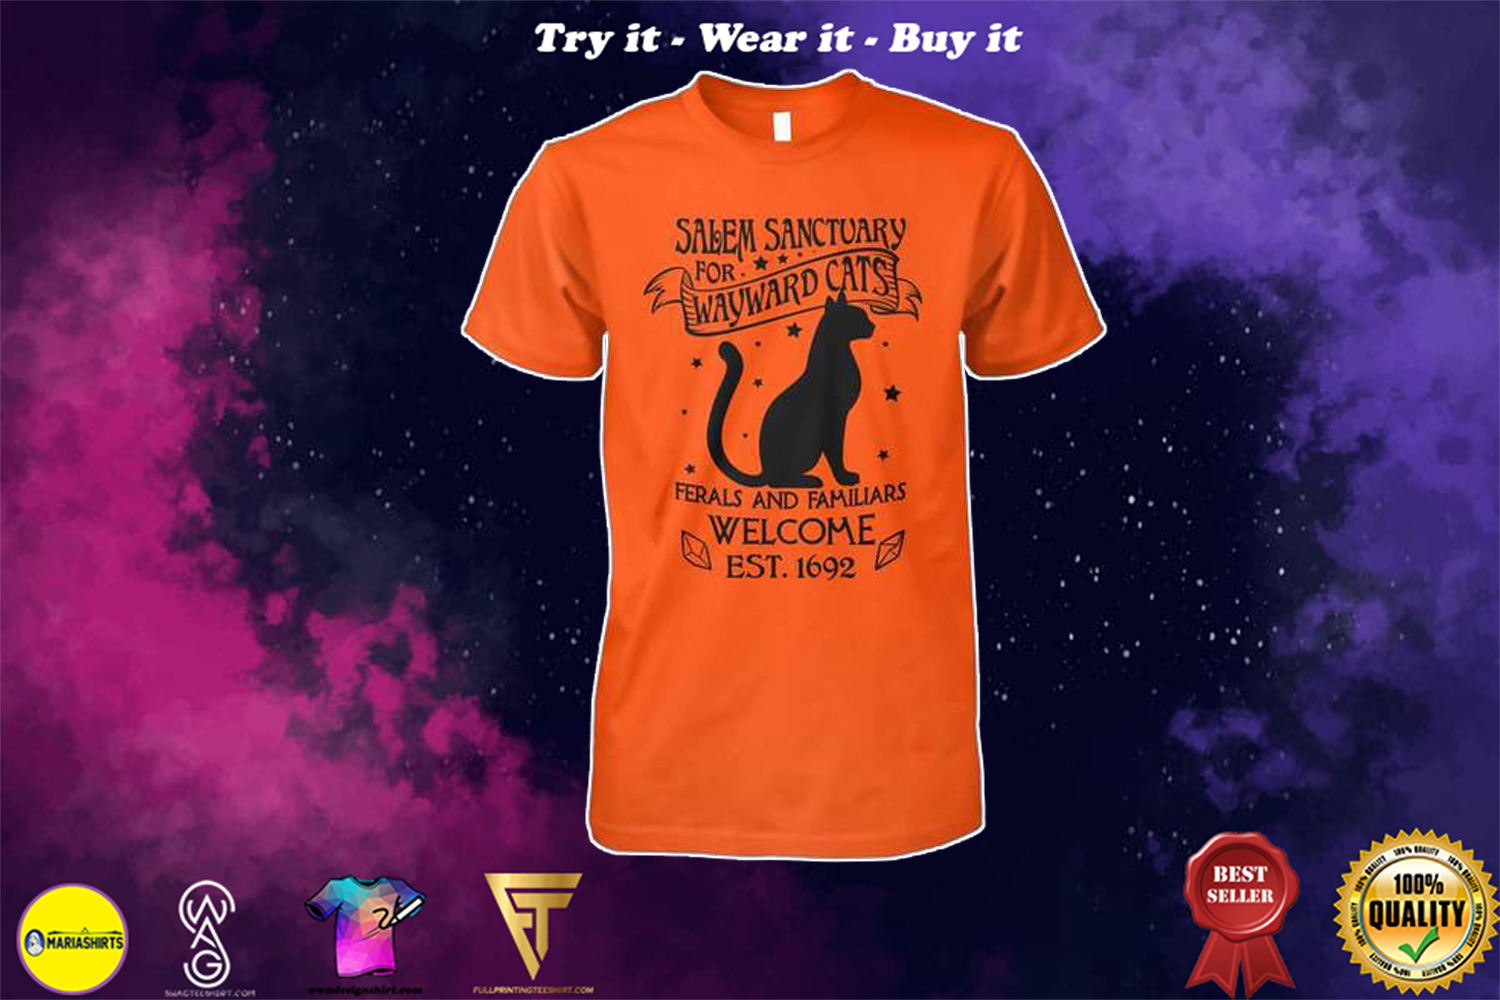 [special edition] halloween salem sanctuary for wayward cats ferals and familiars welcome est 1692 shirt - Maria